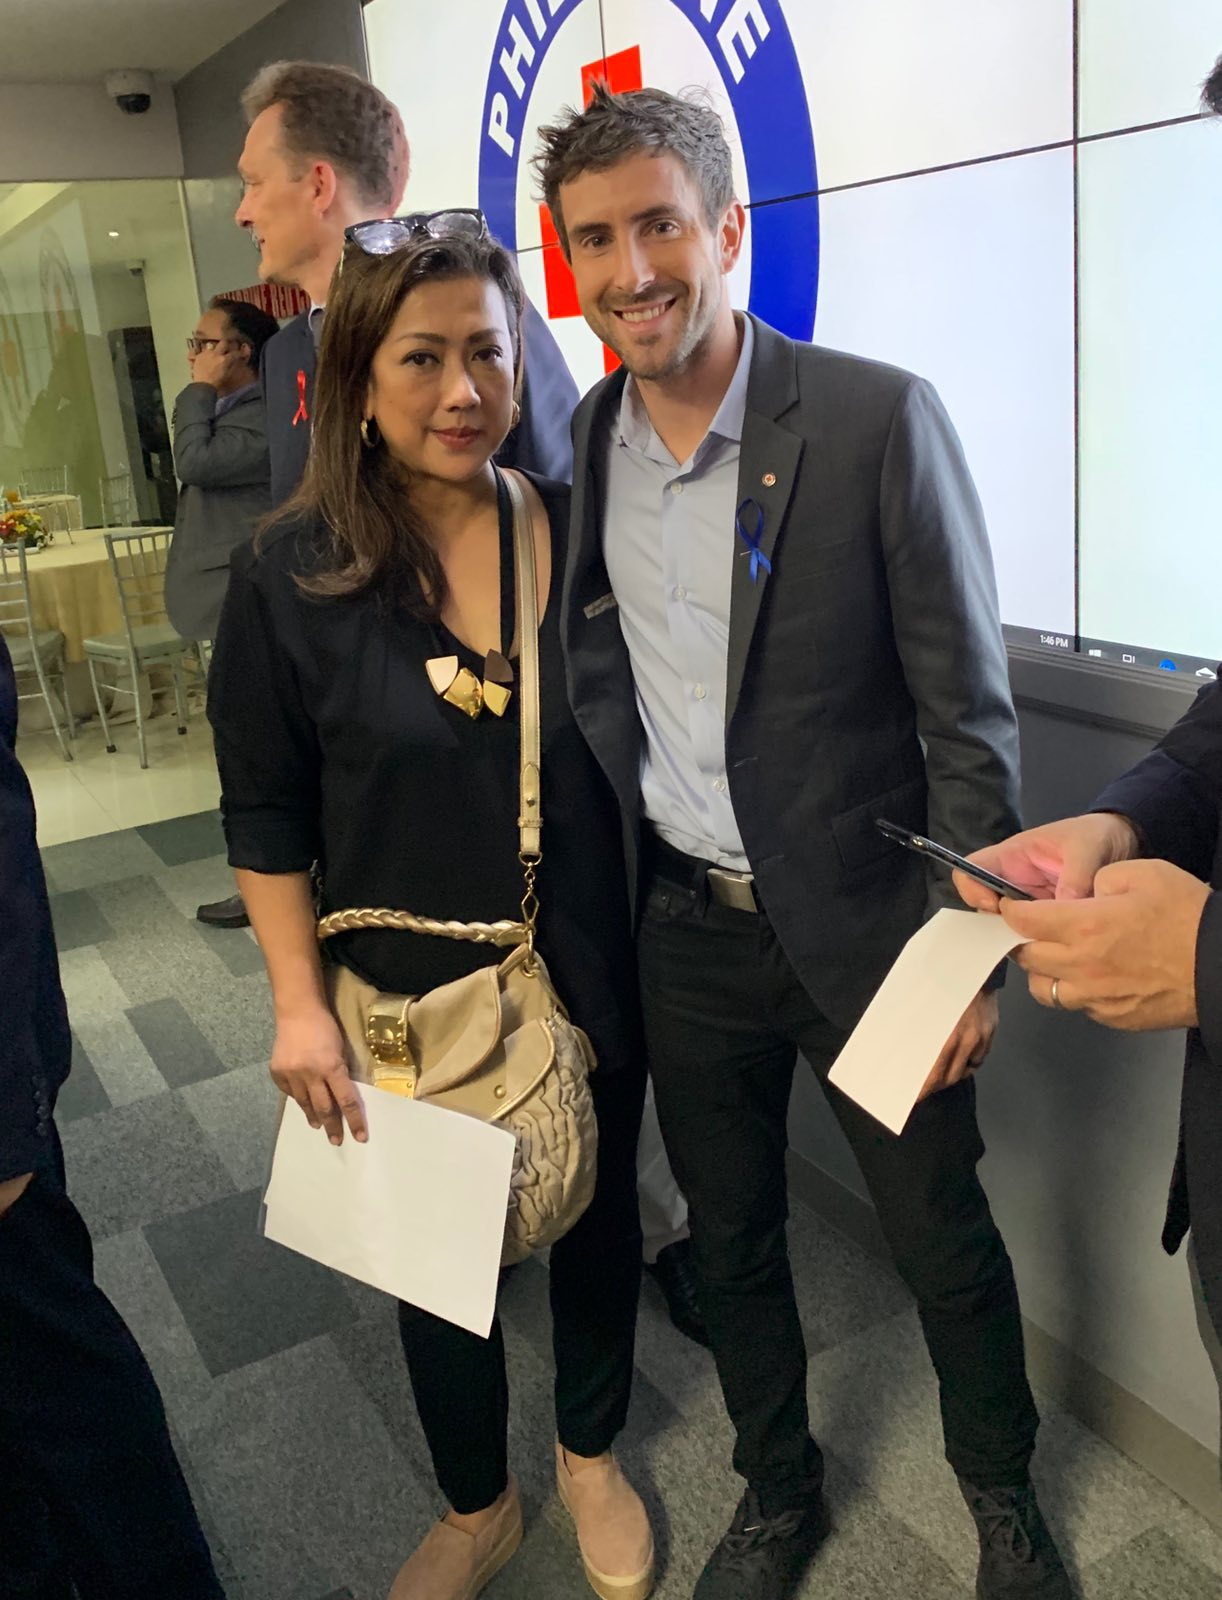 Metro head Christina N. Lopez with Zipline co-founder and CEO Keller Rinaudo